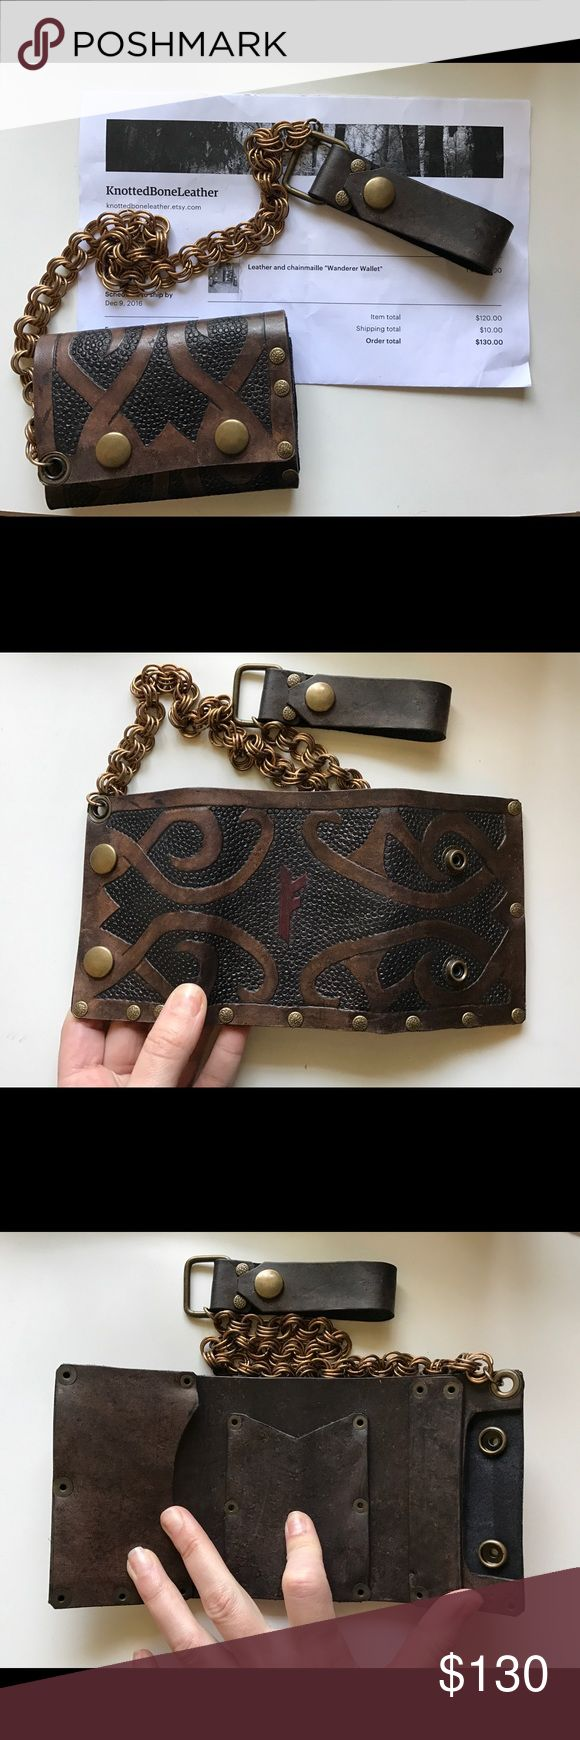 Leather Wallet with Chain 5oz steer hide wallet with antique brass chain. Custom made. Purchased as a gift, never used. Knotted Bone Leather Bags Wallets